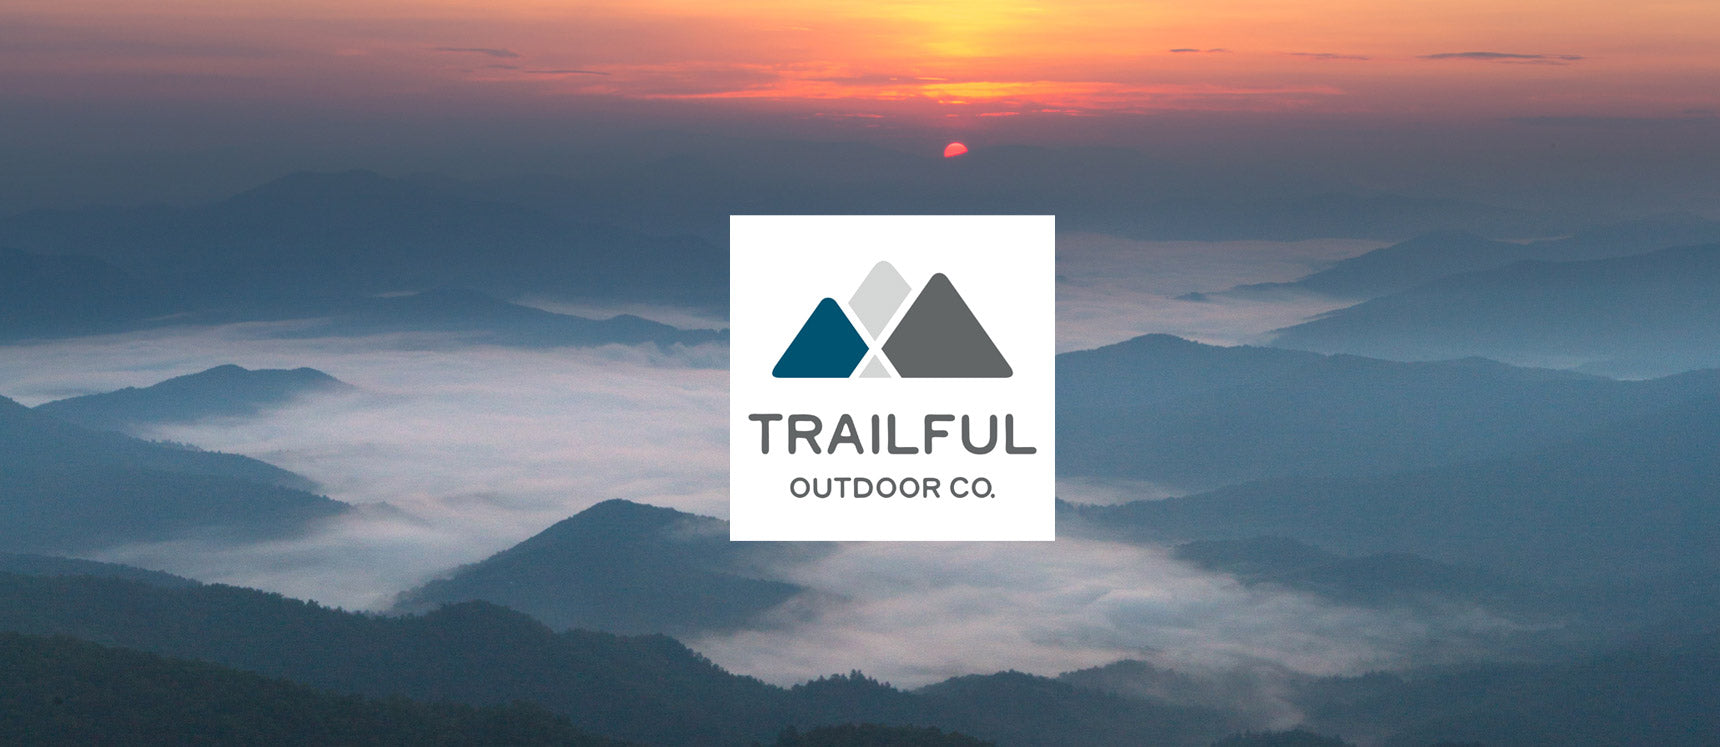 Trailful Exchange and Return Policy